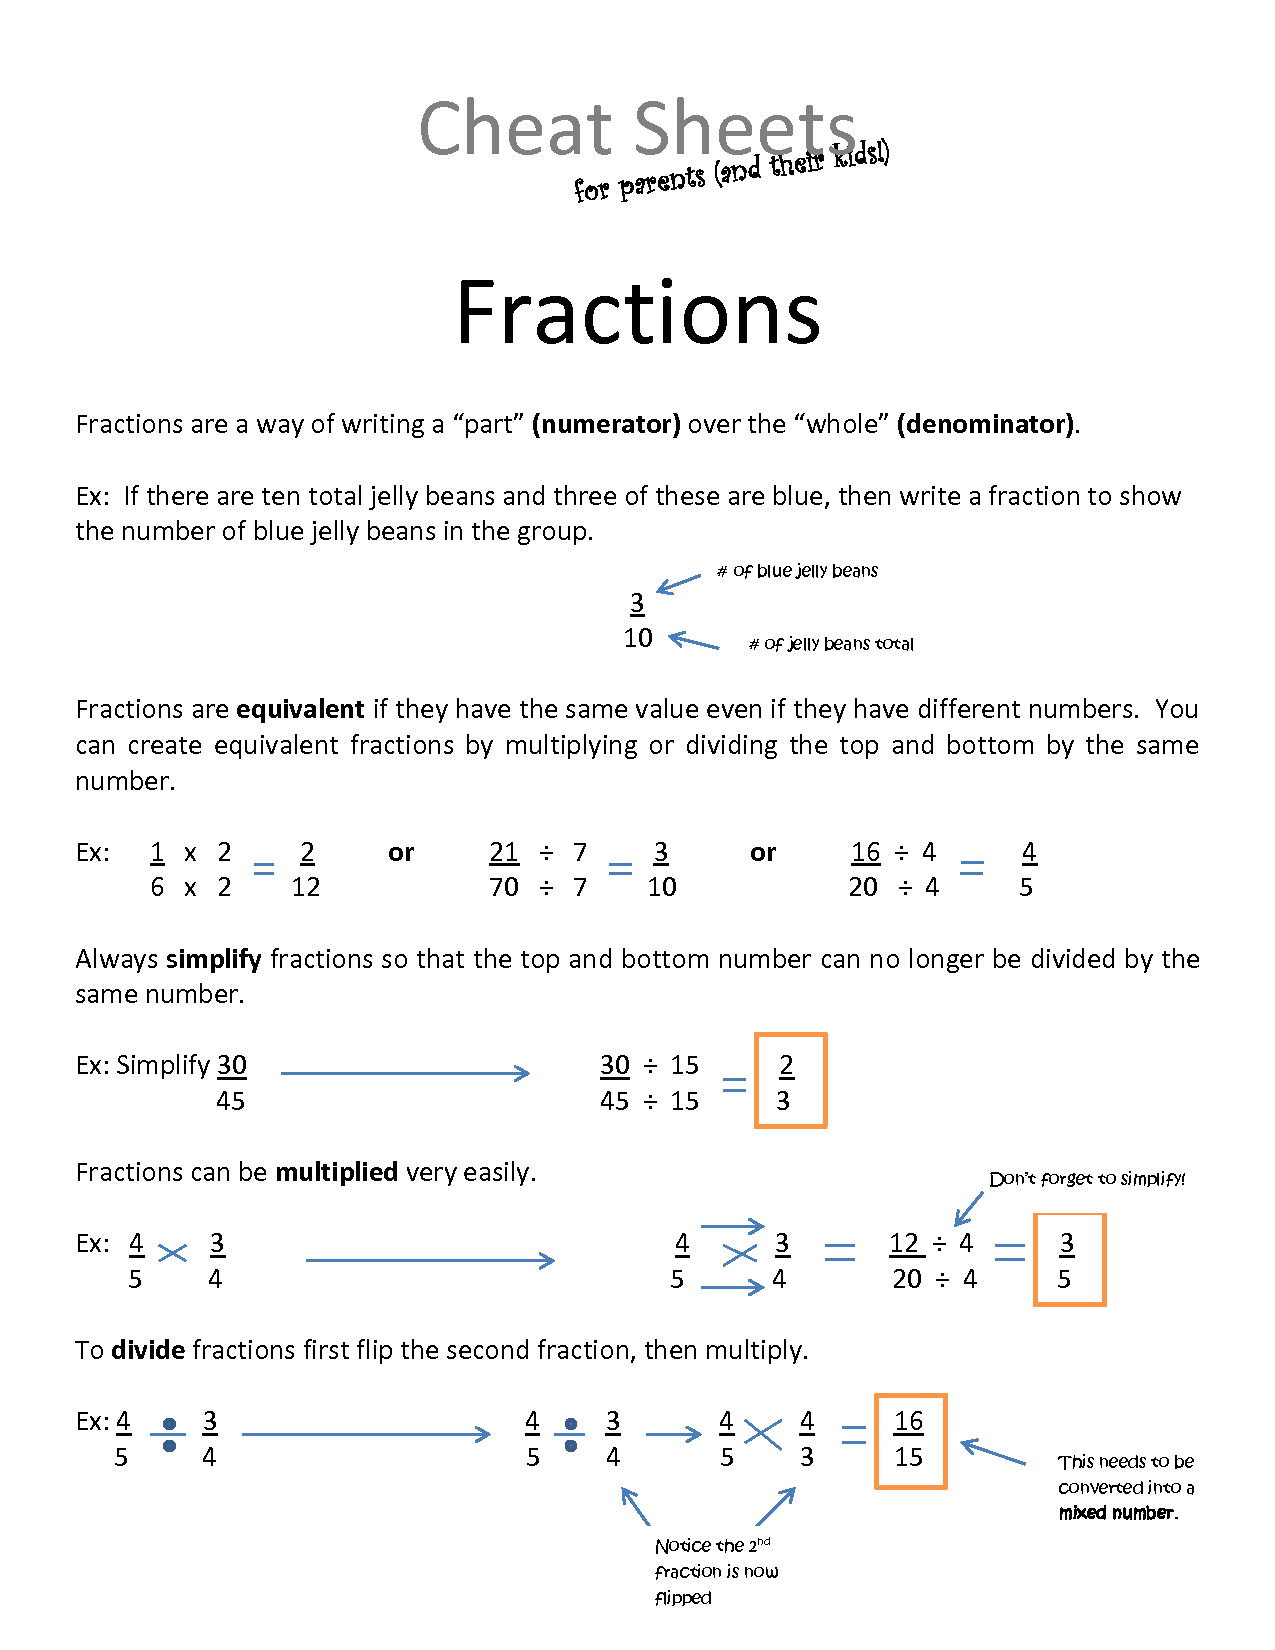 Fractions For Dummies Cheat Sheet | Fractions Cheat Sheets | Spiral ...